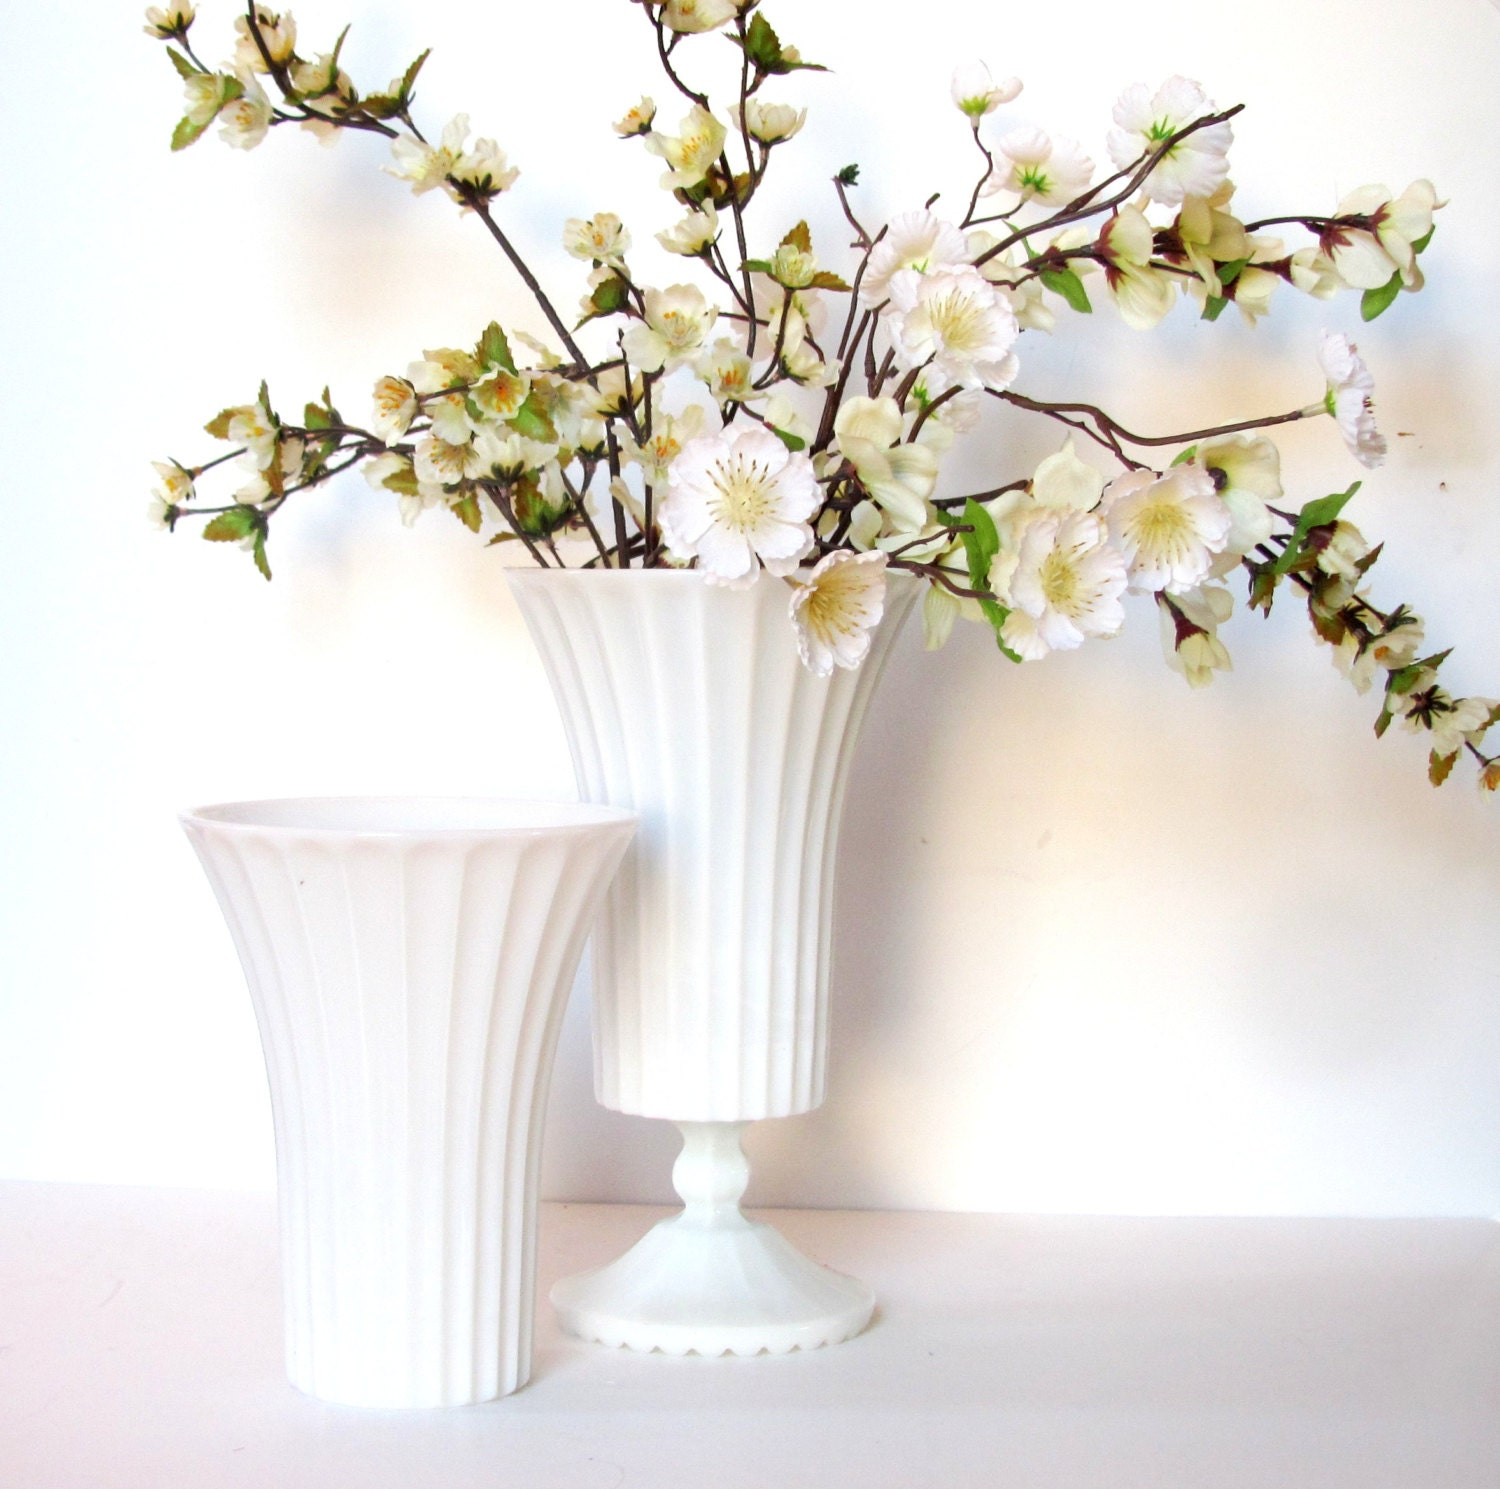 Flower Vases For Weddings: 2 Large Milk Glass Vases Large White Flower Vase Wedding